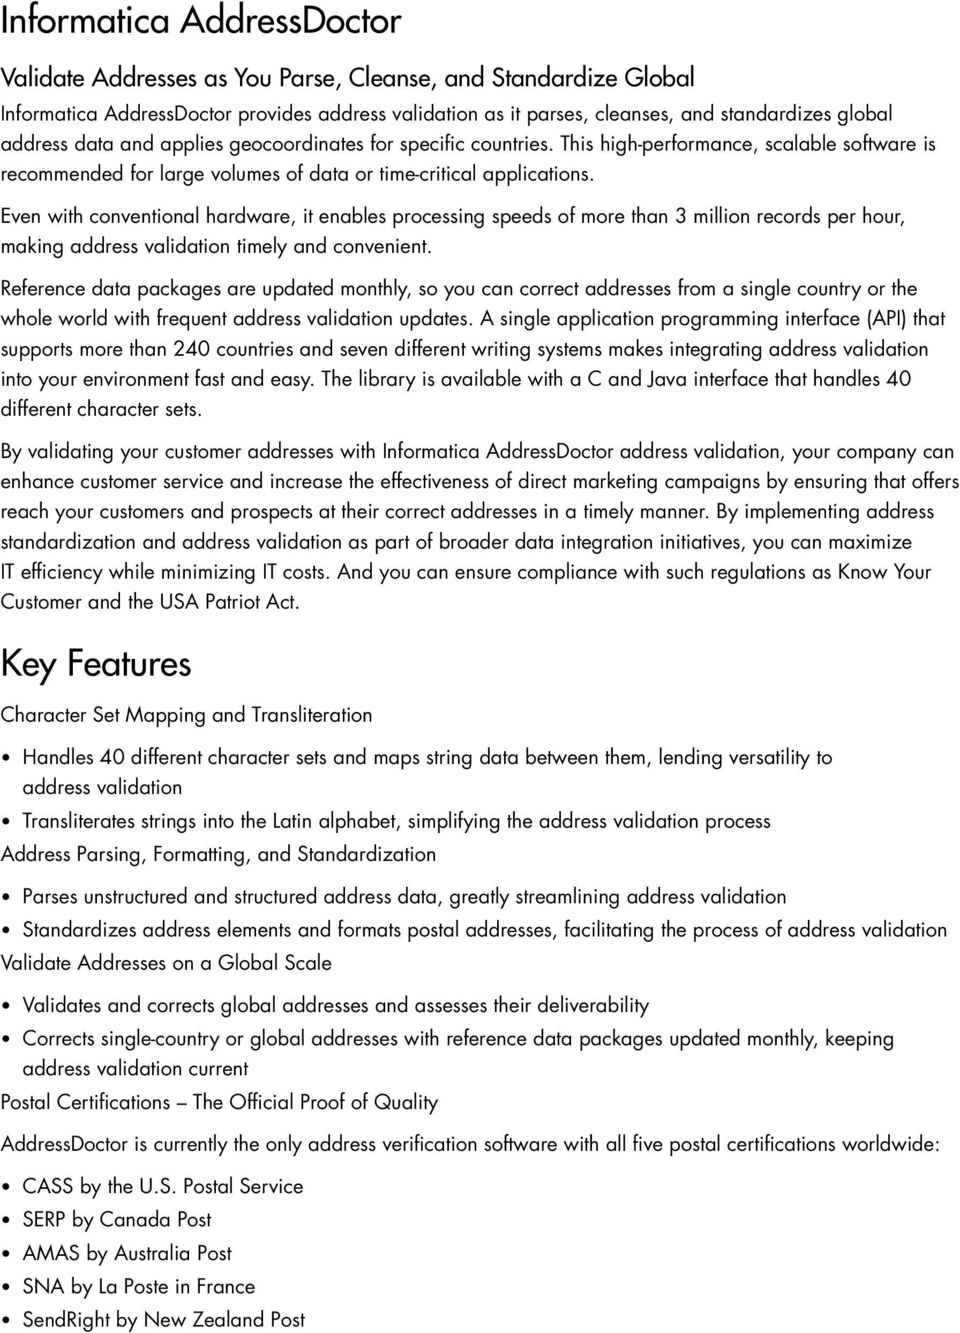 Informatica Data Quality Product Family - PDF